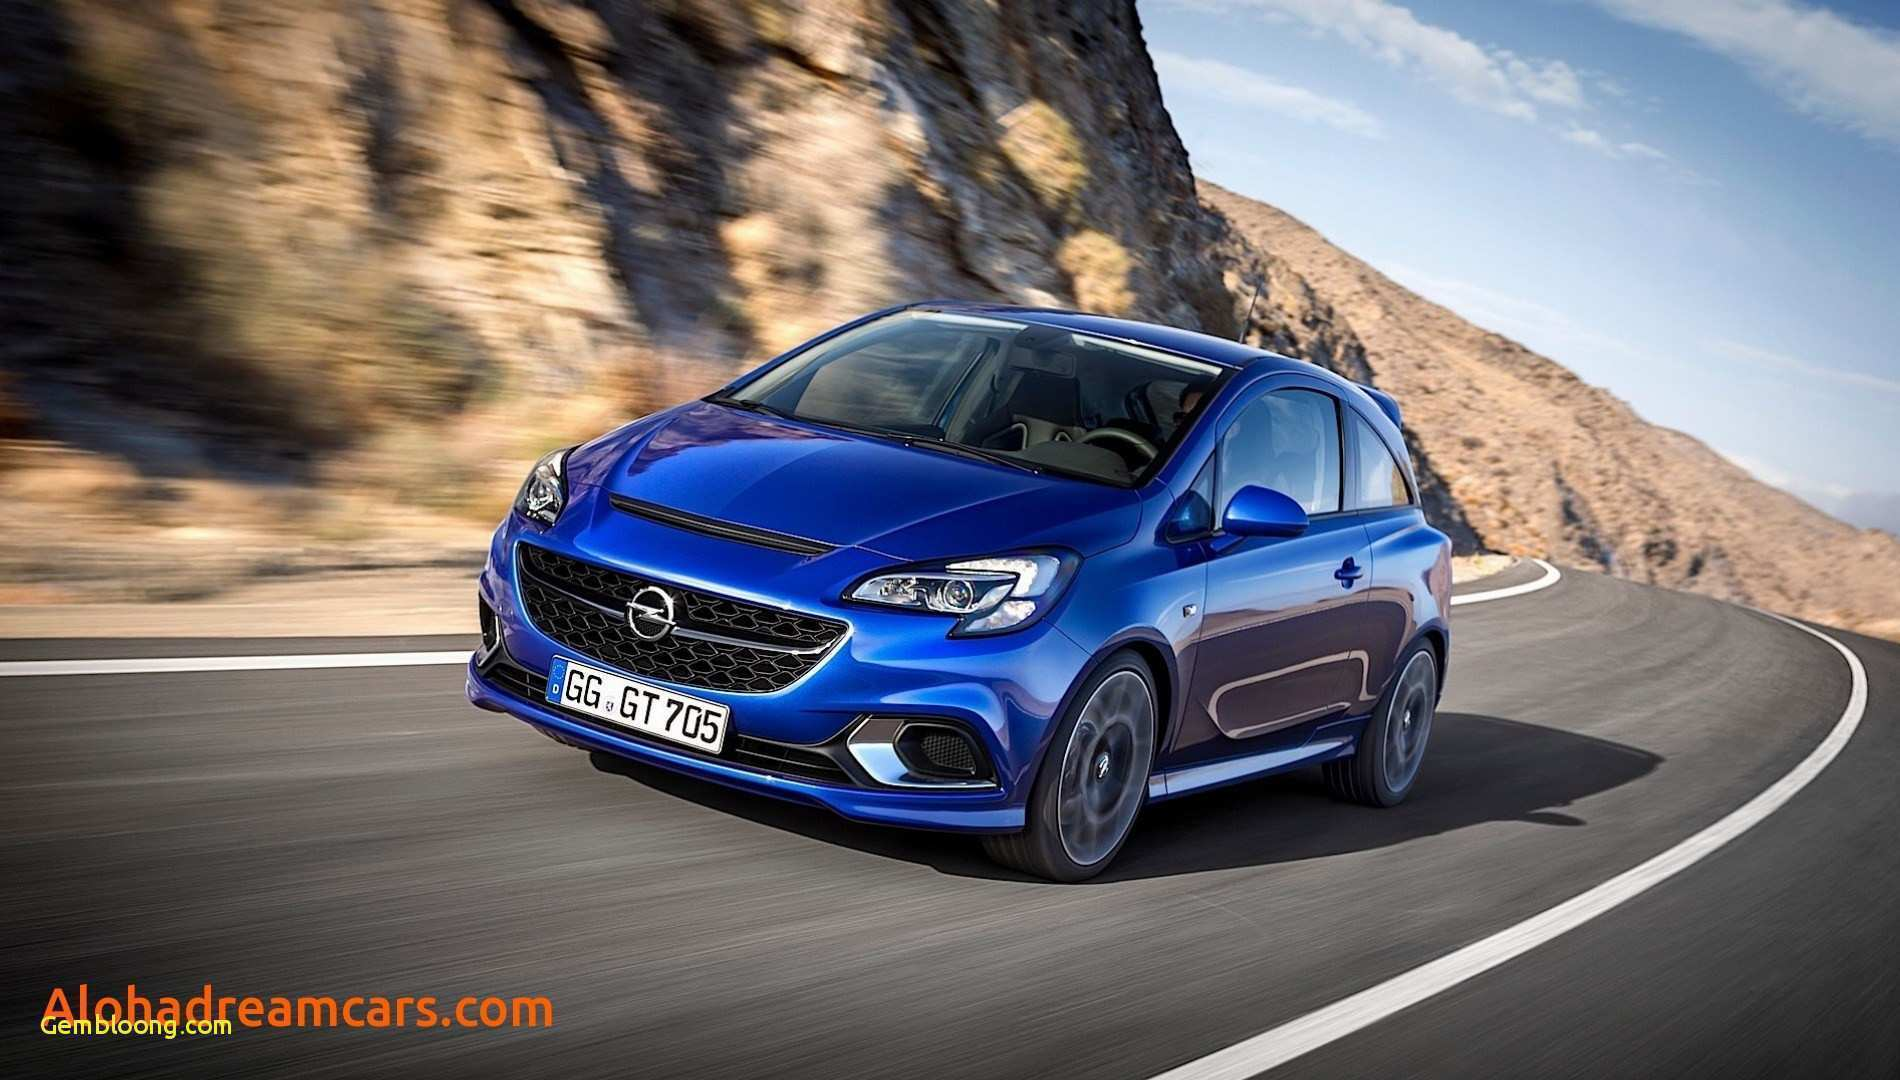 85 Concept of Opel Opc 2020 Exterior and Interior by Opel Opc 2020